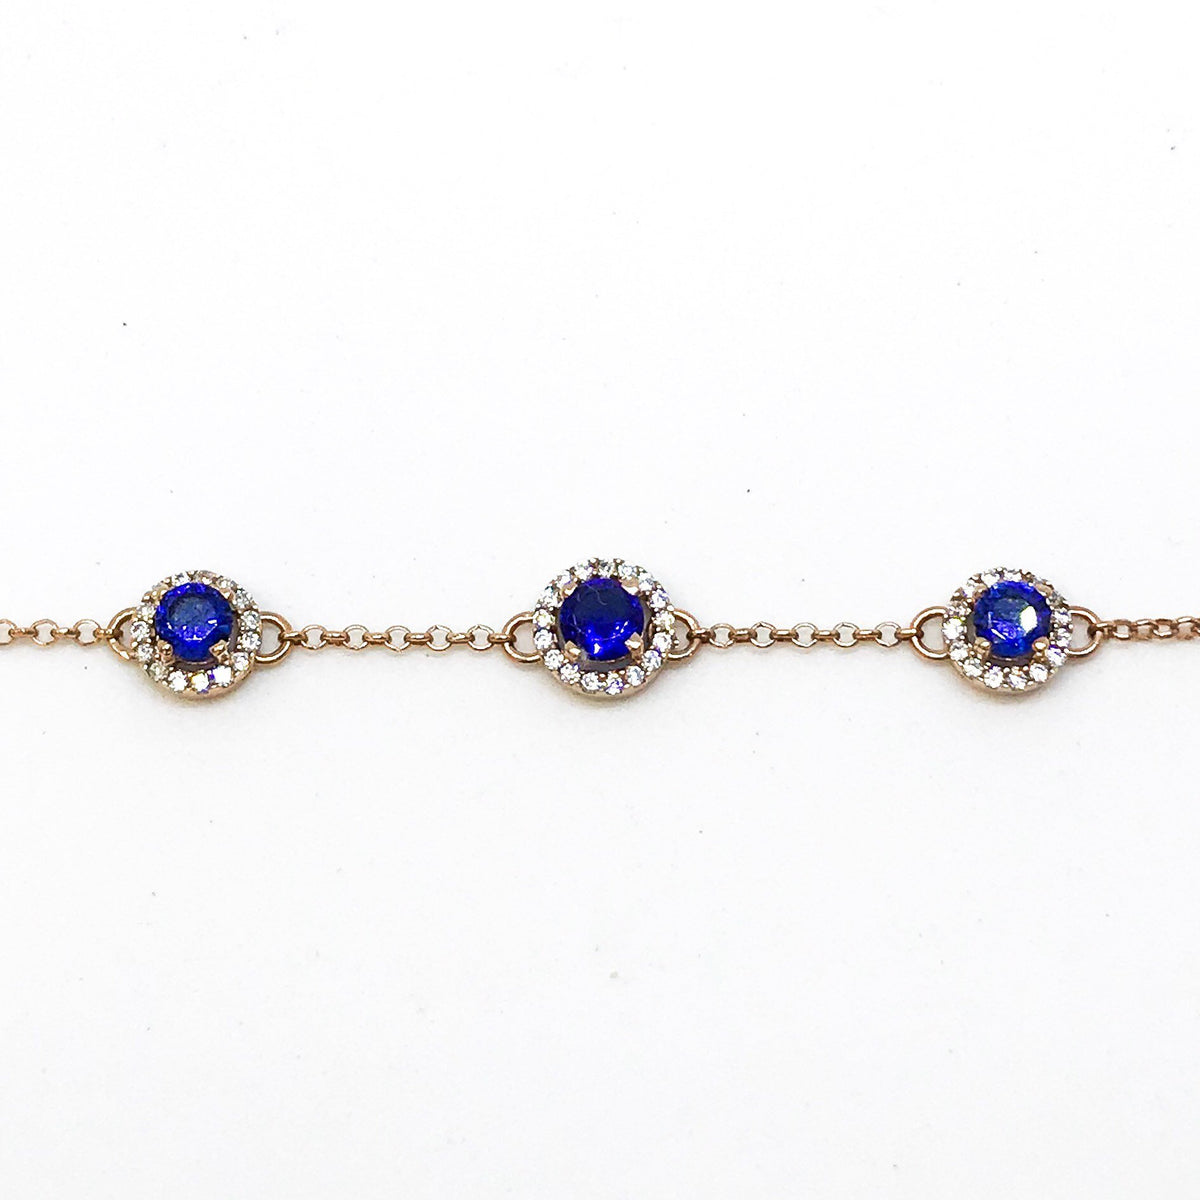 New 14k Rose Gold Layer On 925 Sterling Silver Cz Circle Blue Stones Link Bracelet 0.7 mm -8""